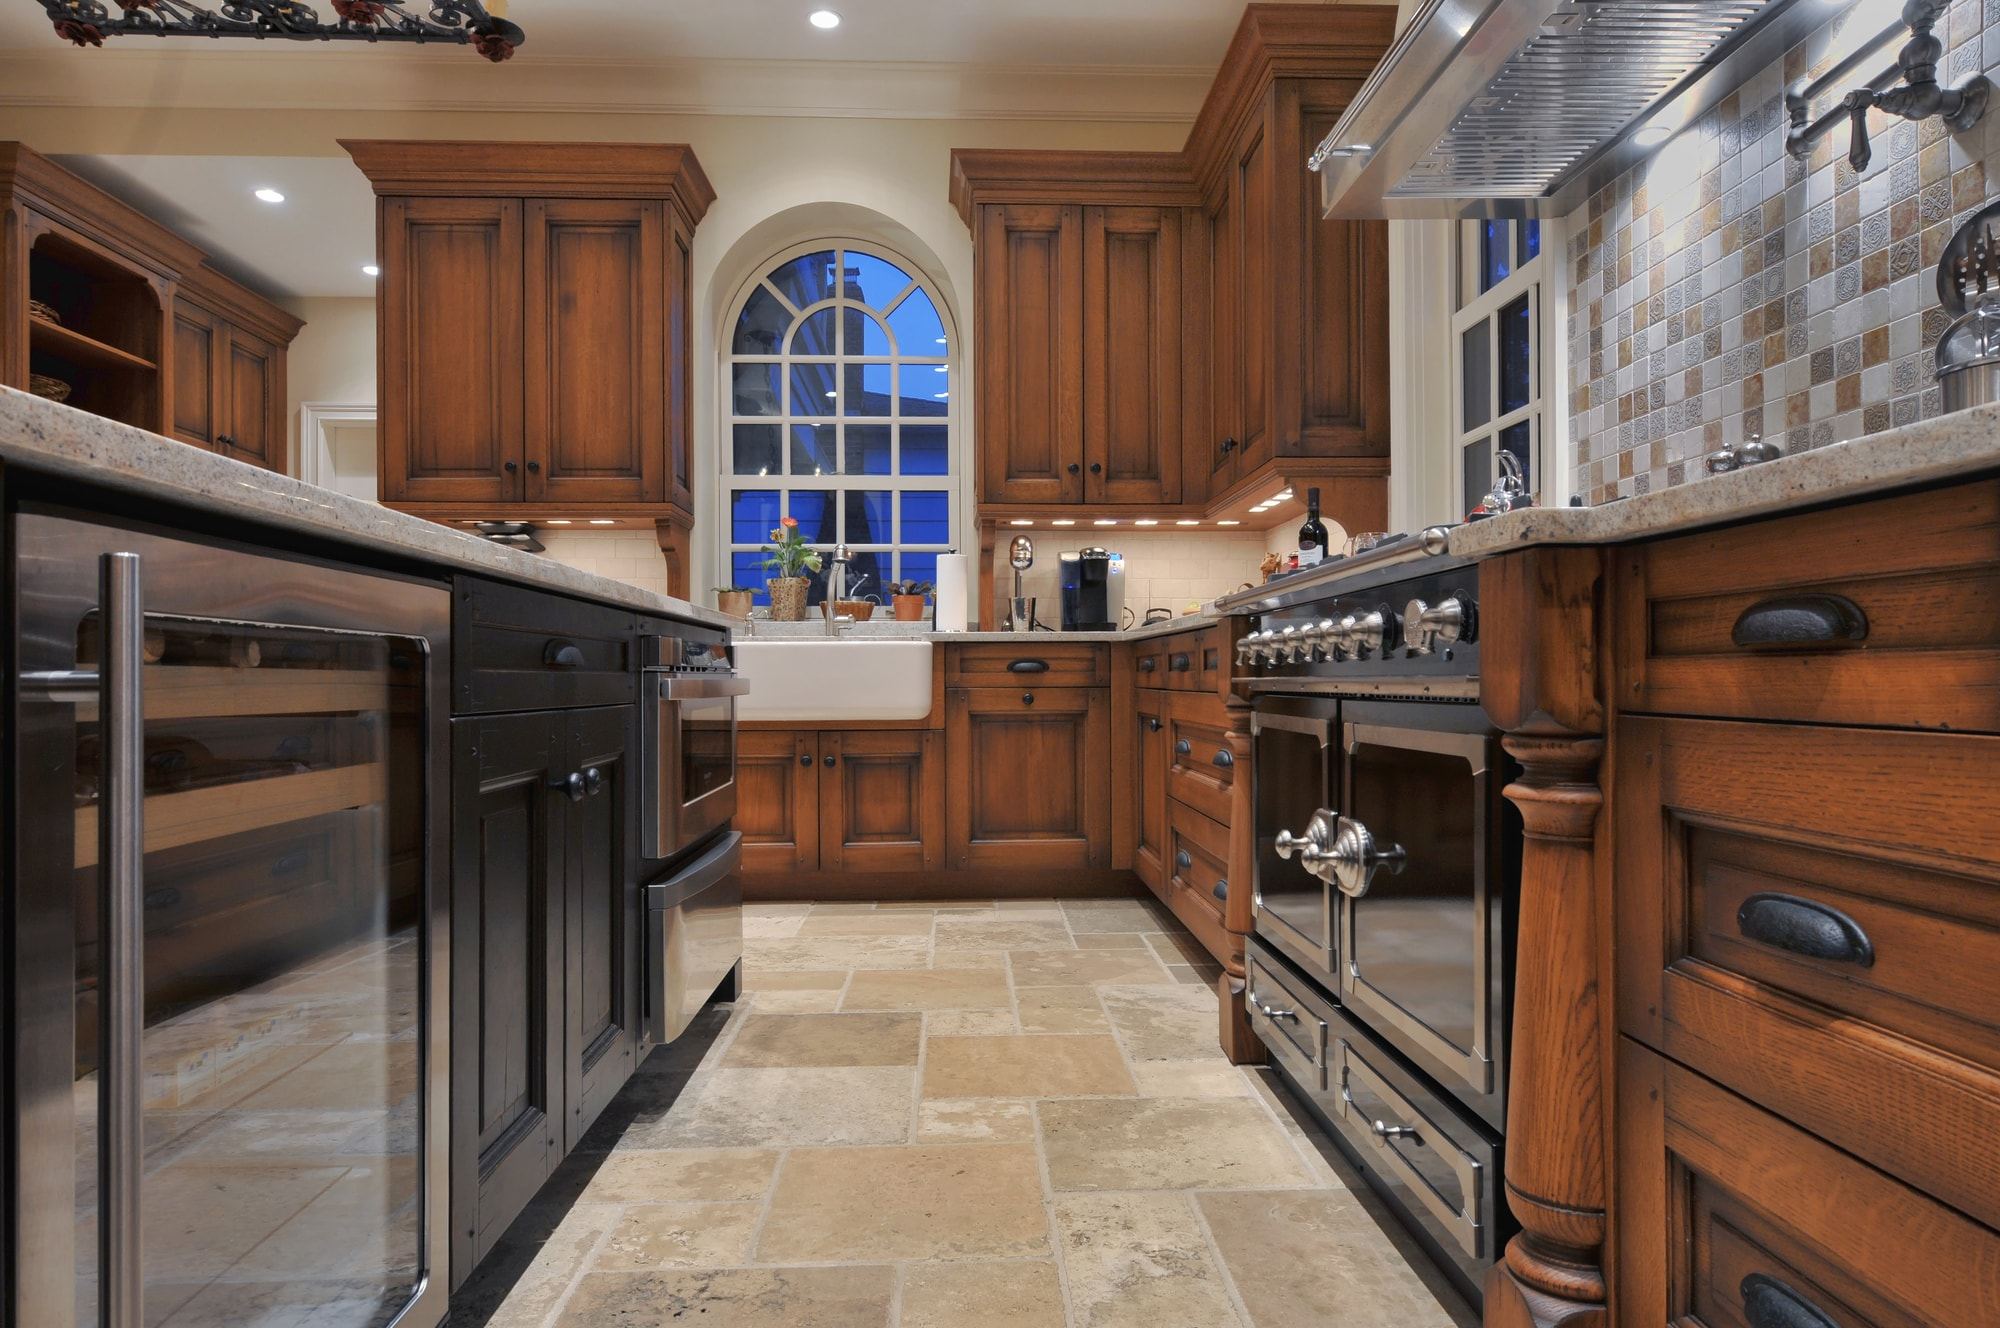 Traditional style kitchen with tiled kitchen floor